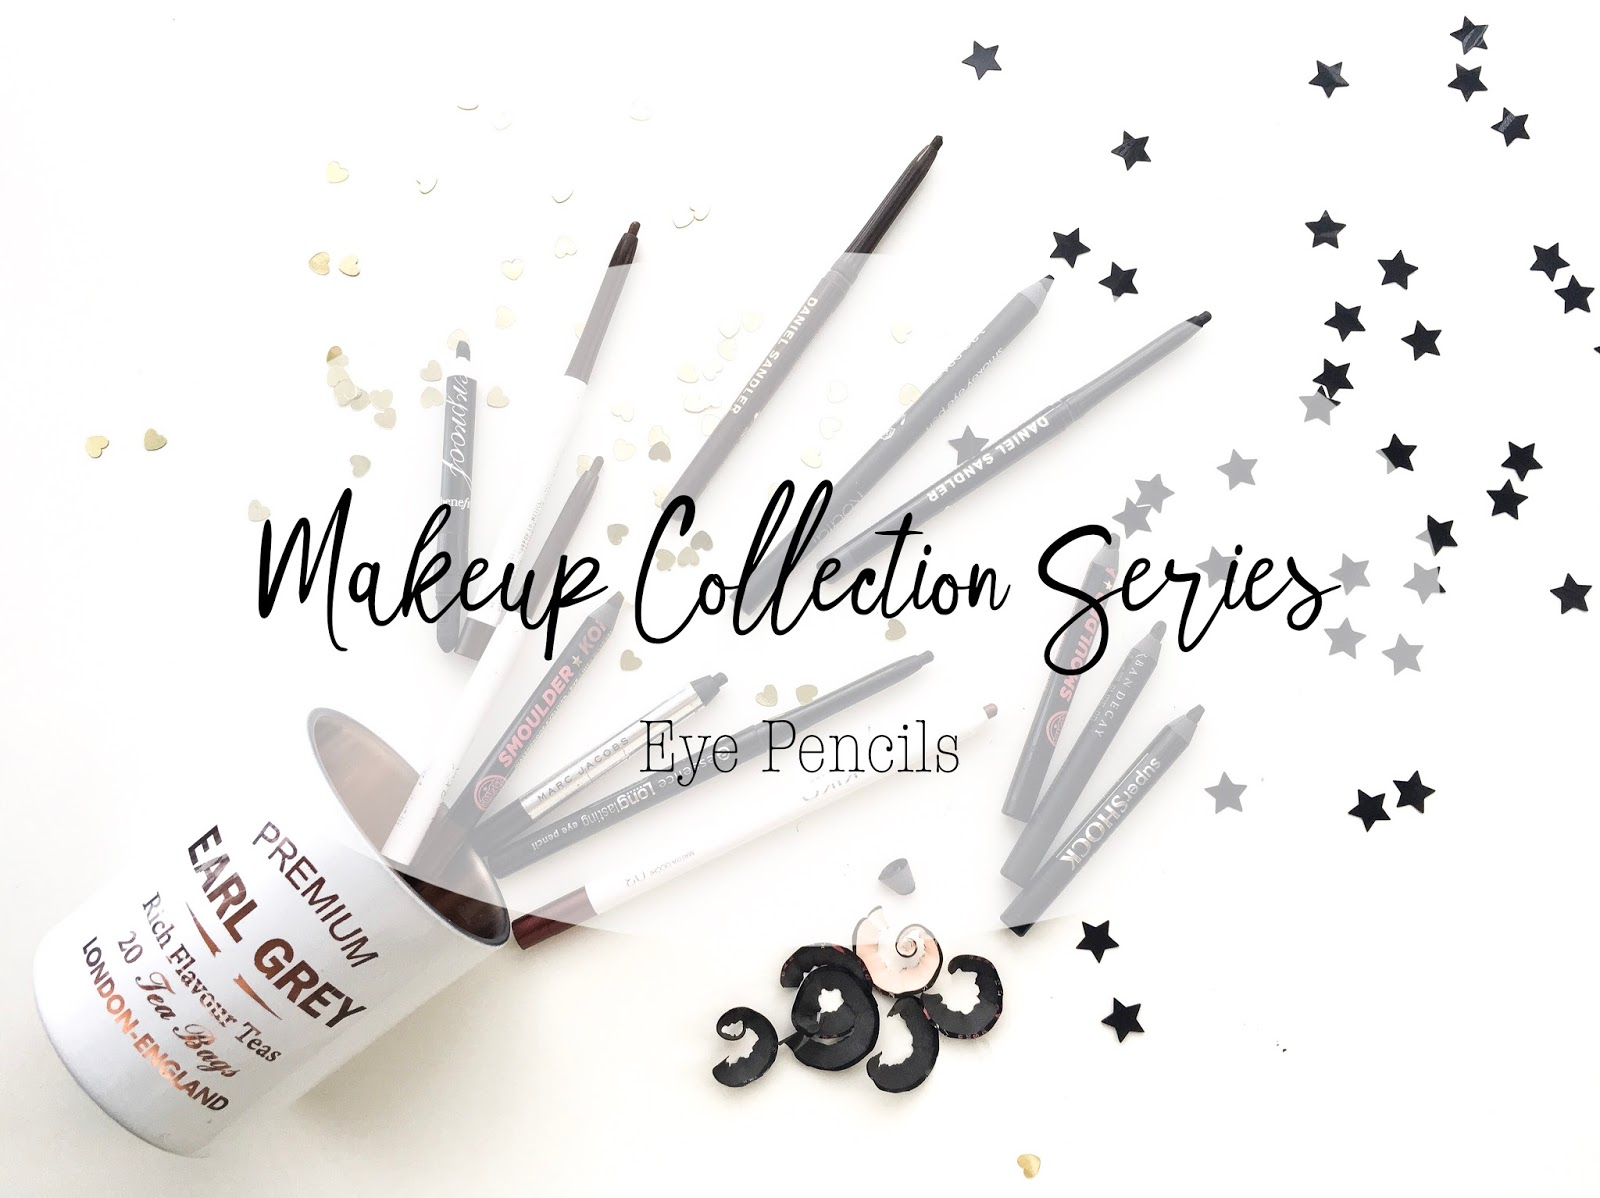 best eyeliner pencils for all budgets, top eye pencils from highstreet and high end